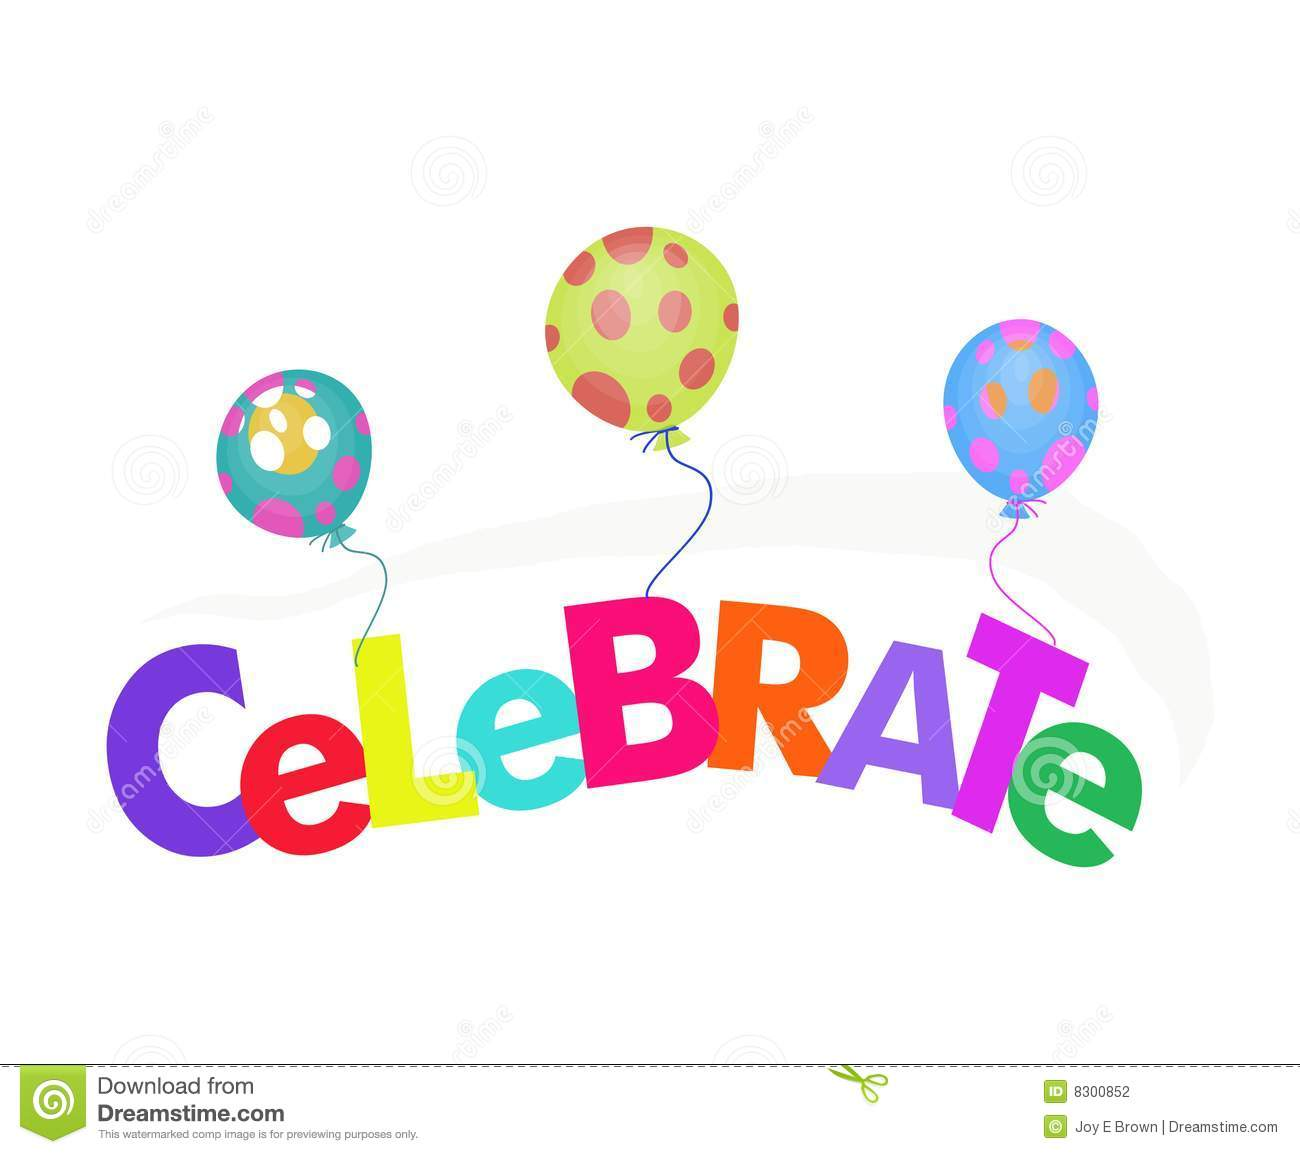 Celebration x making the. Celebrate clipart animated